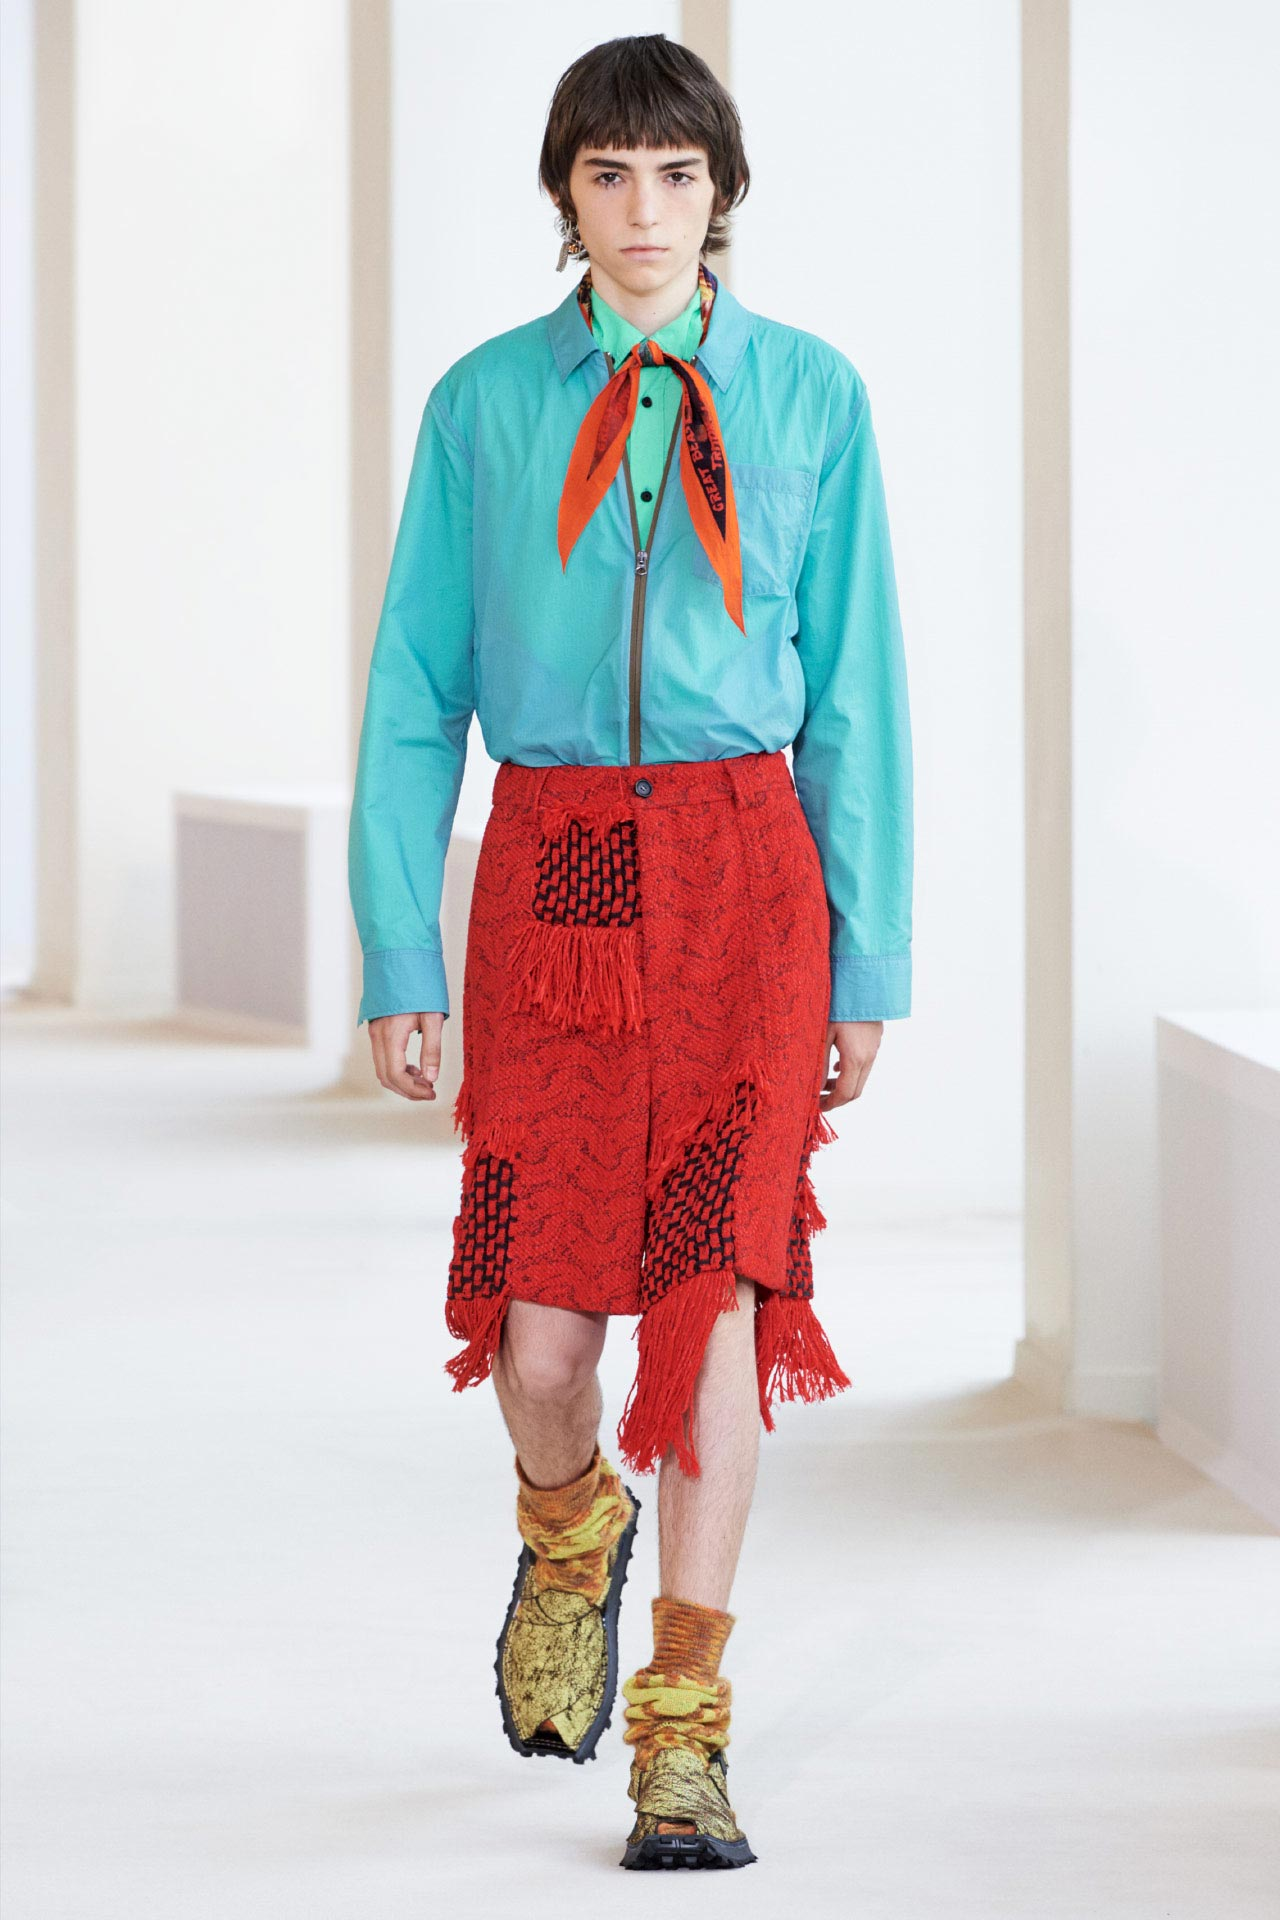 Look Spring/Summer, image 13